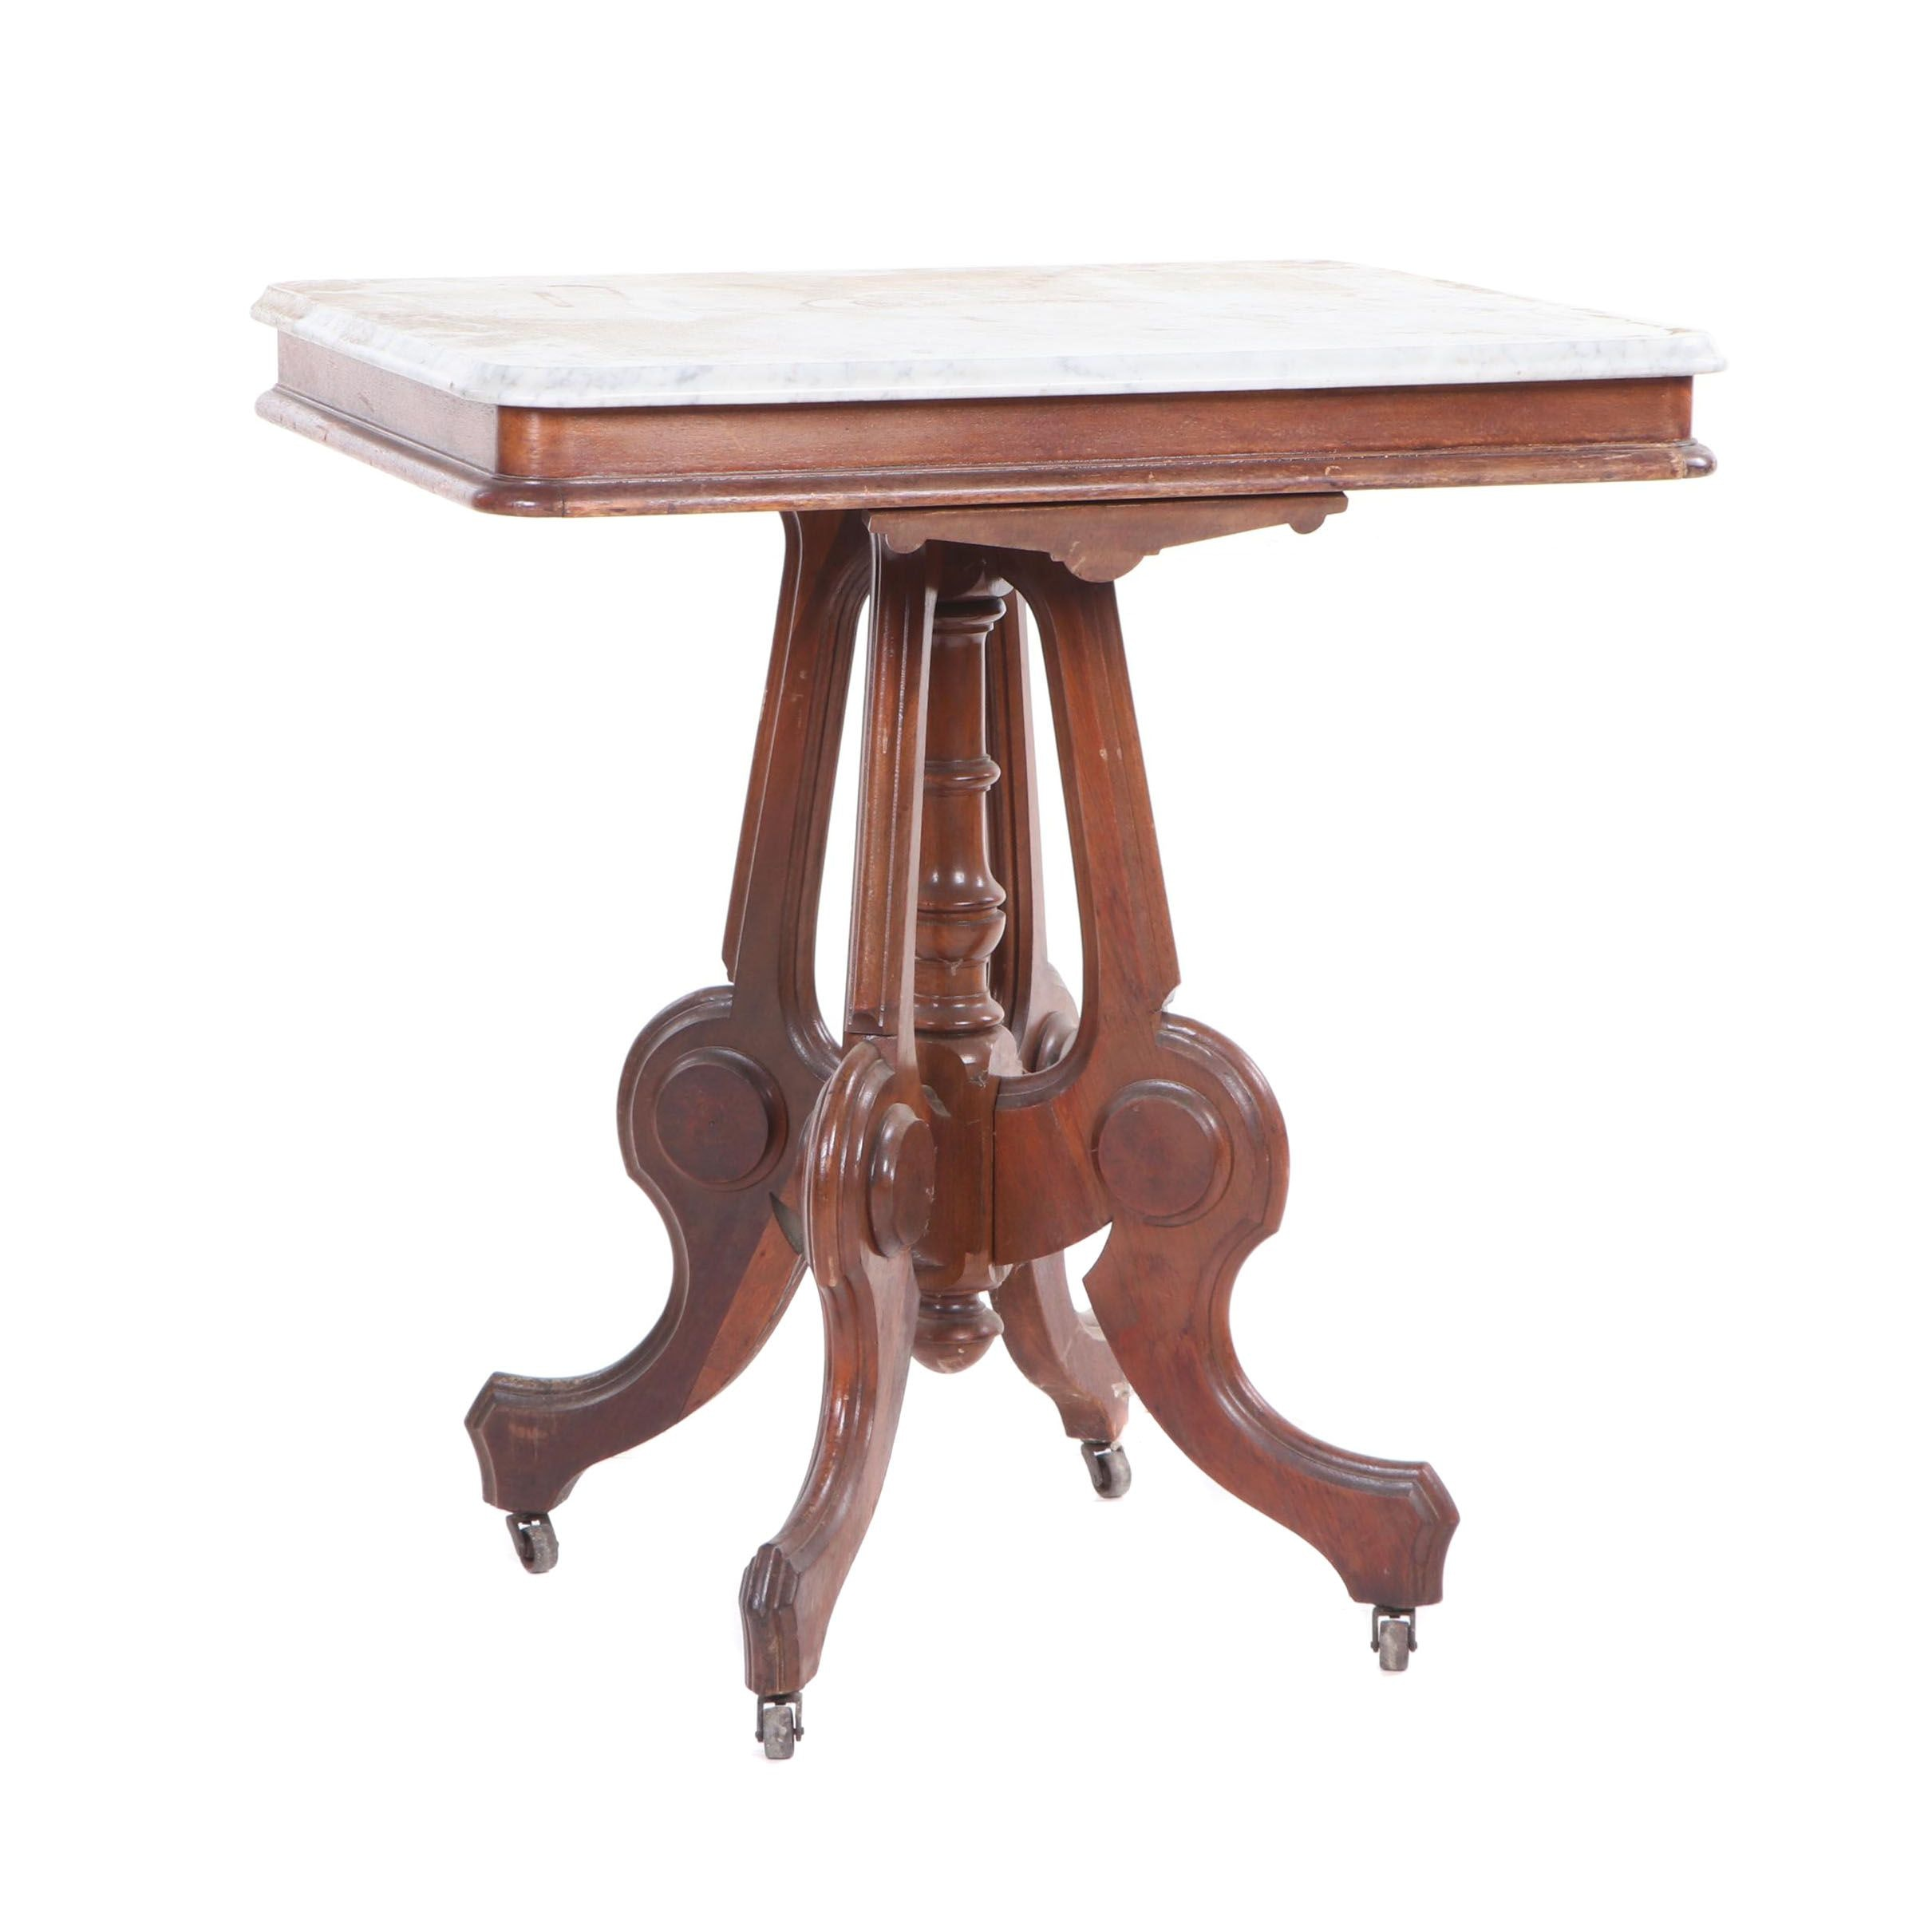 Eastlake Style Mahogany Side Table with Marble Top, Early 20th Century